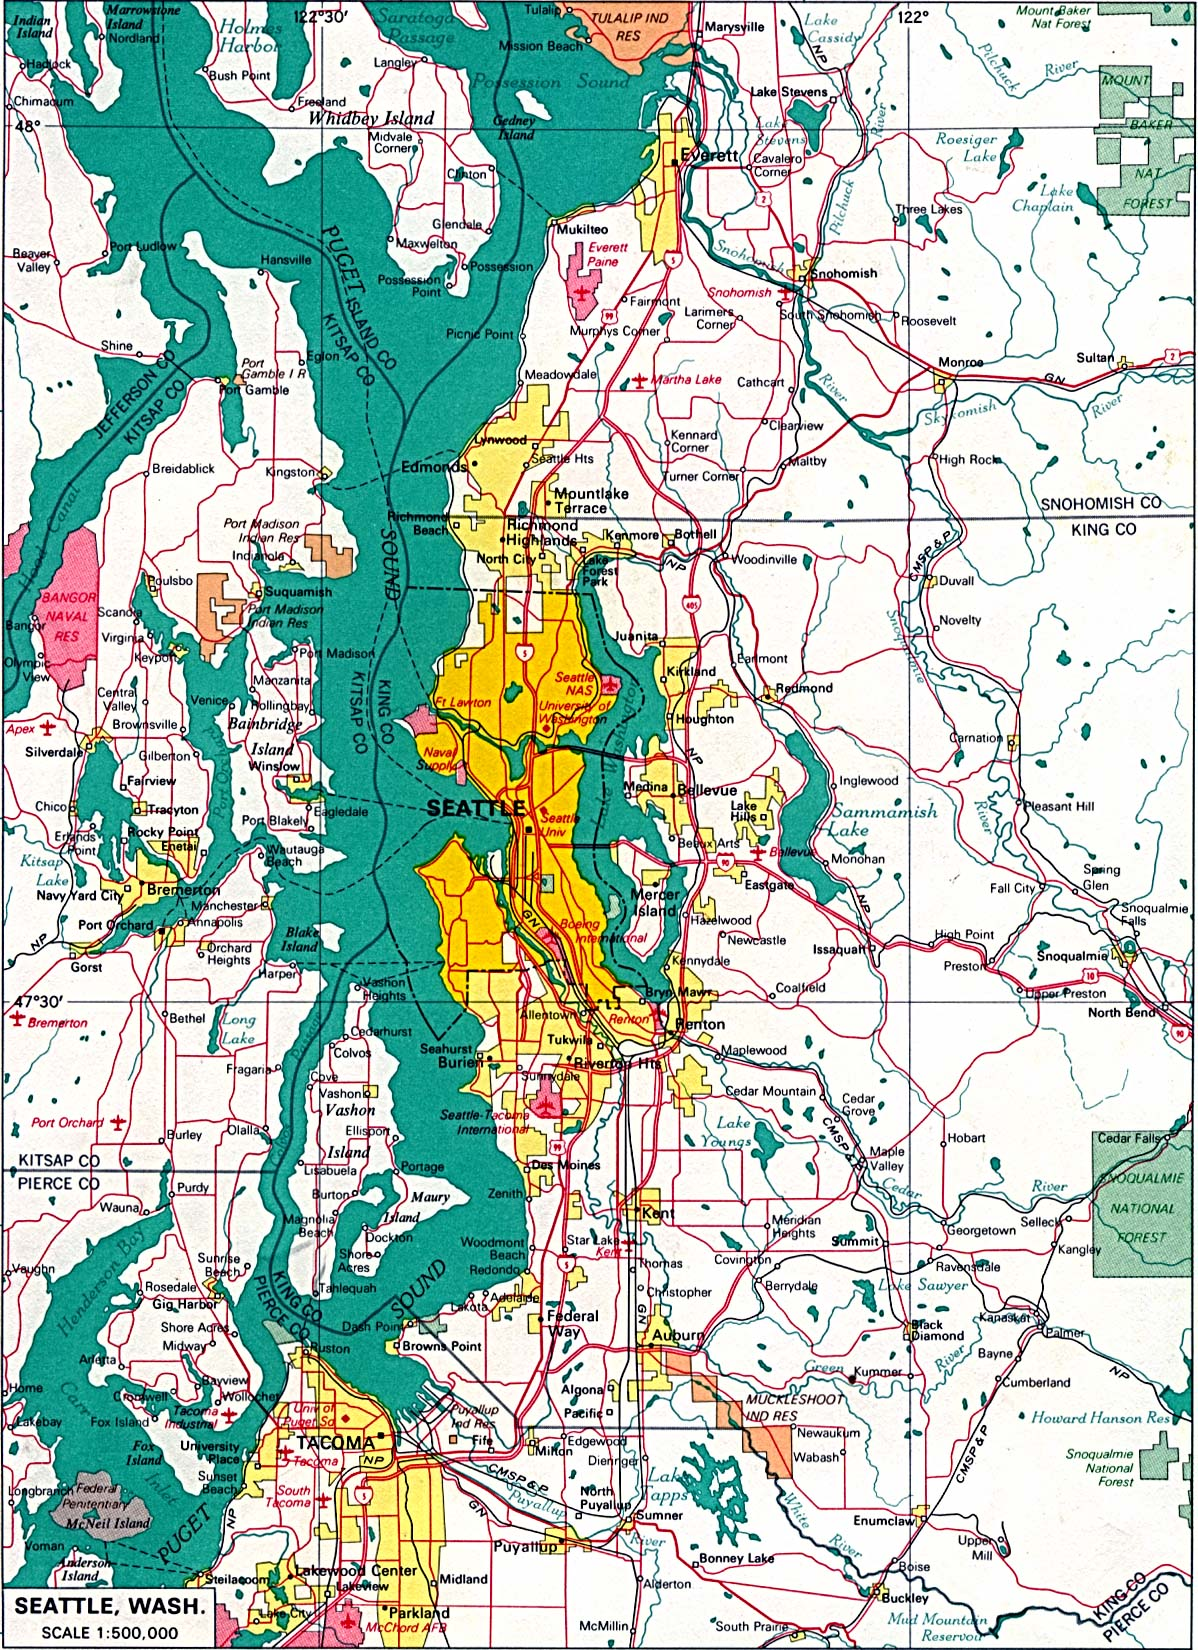 Washington State Map Seattle.Washington Maps Perry Castaneda Map Collection Ut Library Online